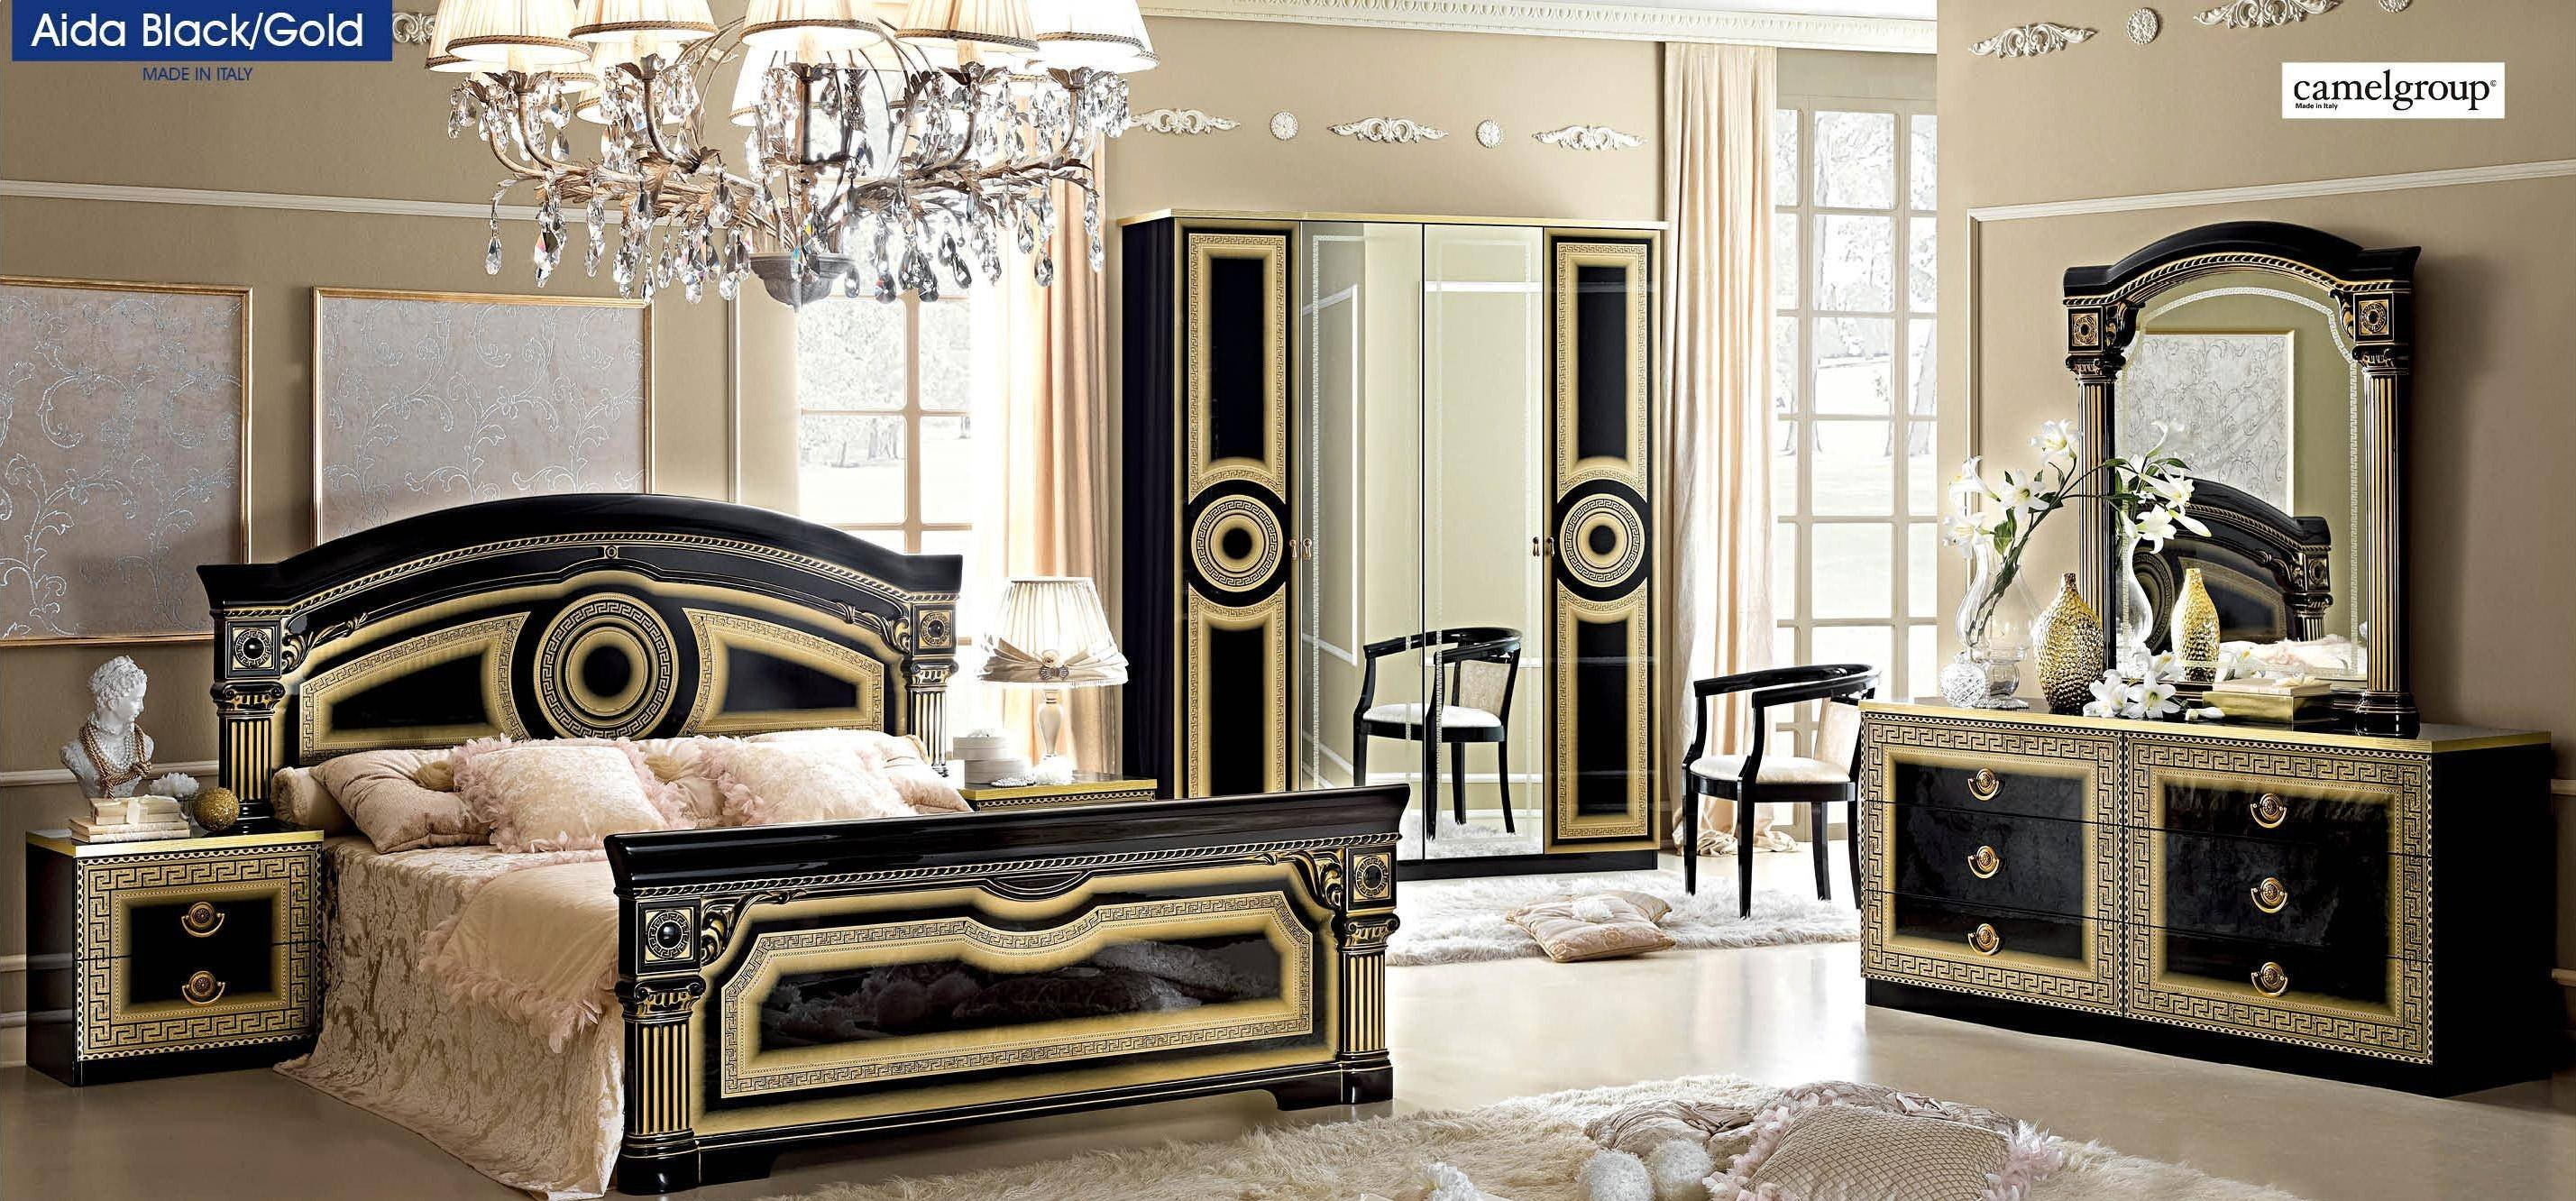 Classic Italian Bedroom Furniture Luxury Esf Aida Black Gold Lacquer Finish Queen Bedroom Set 5ps